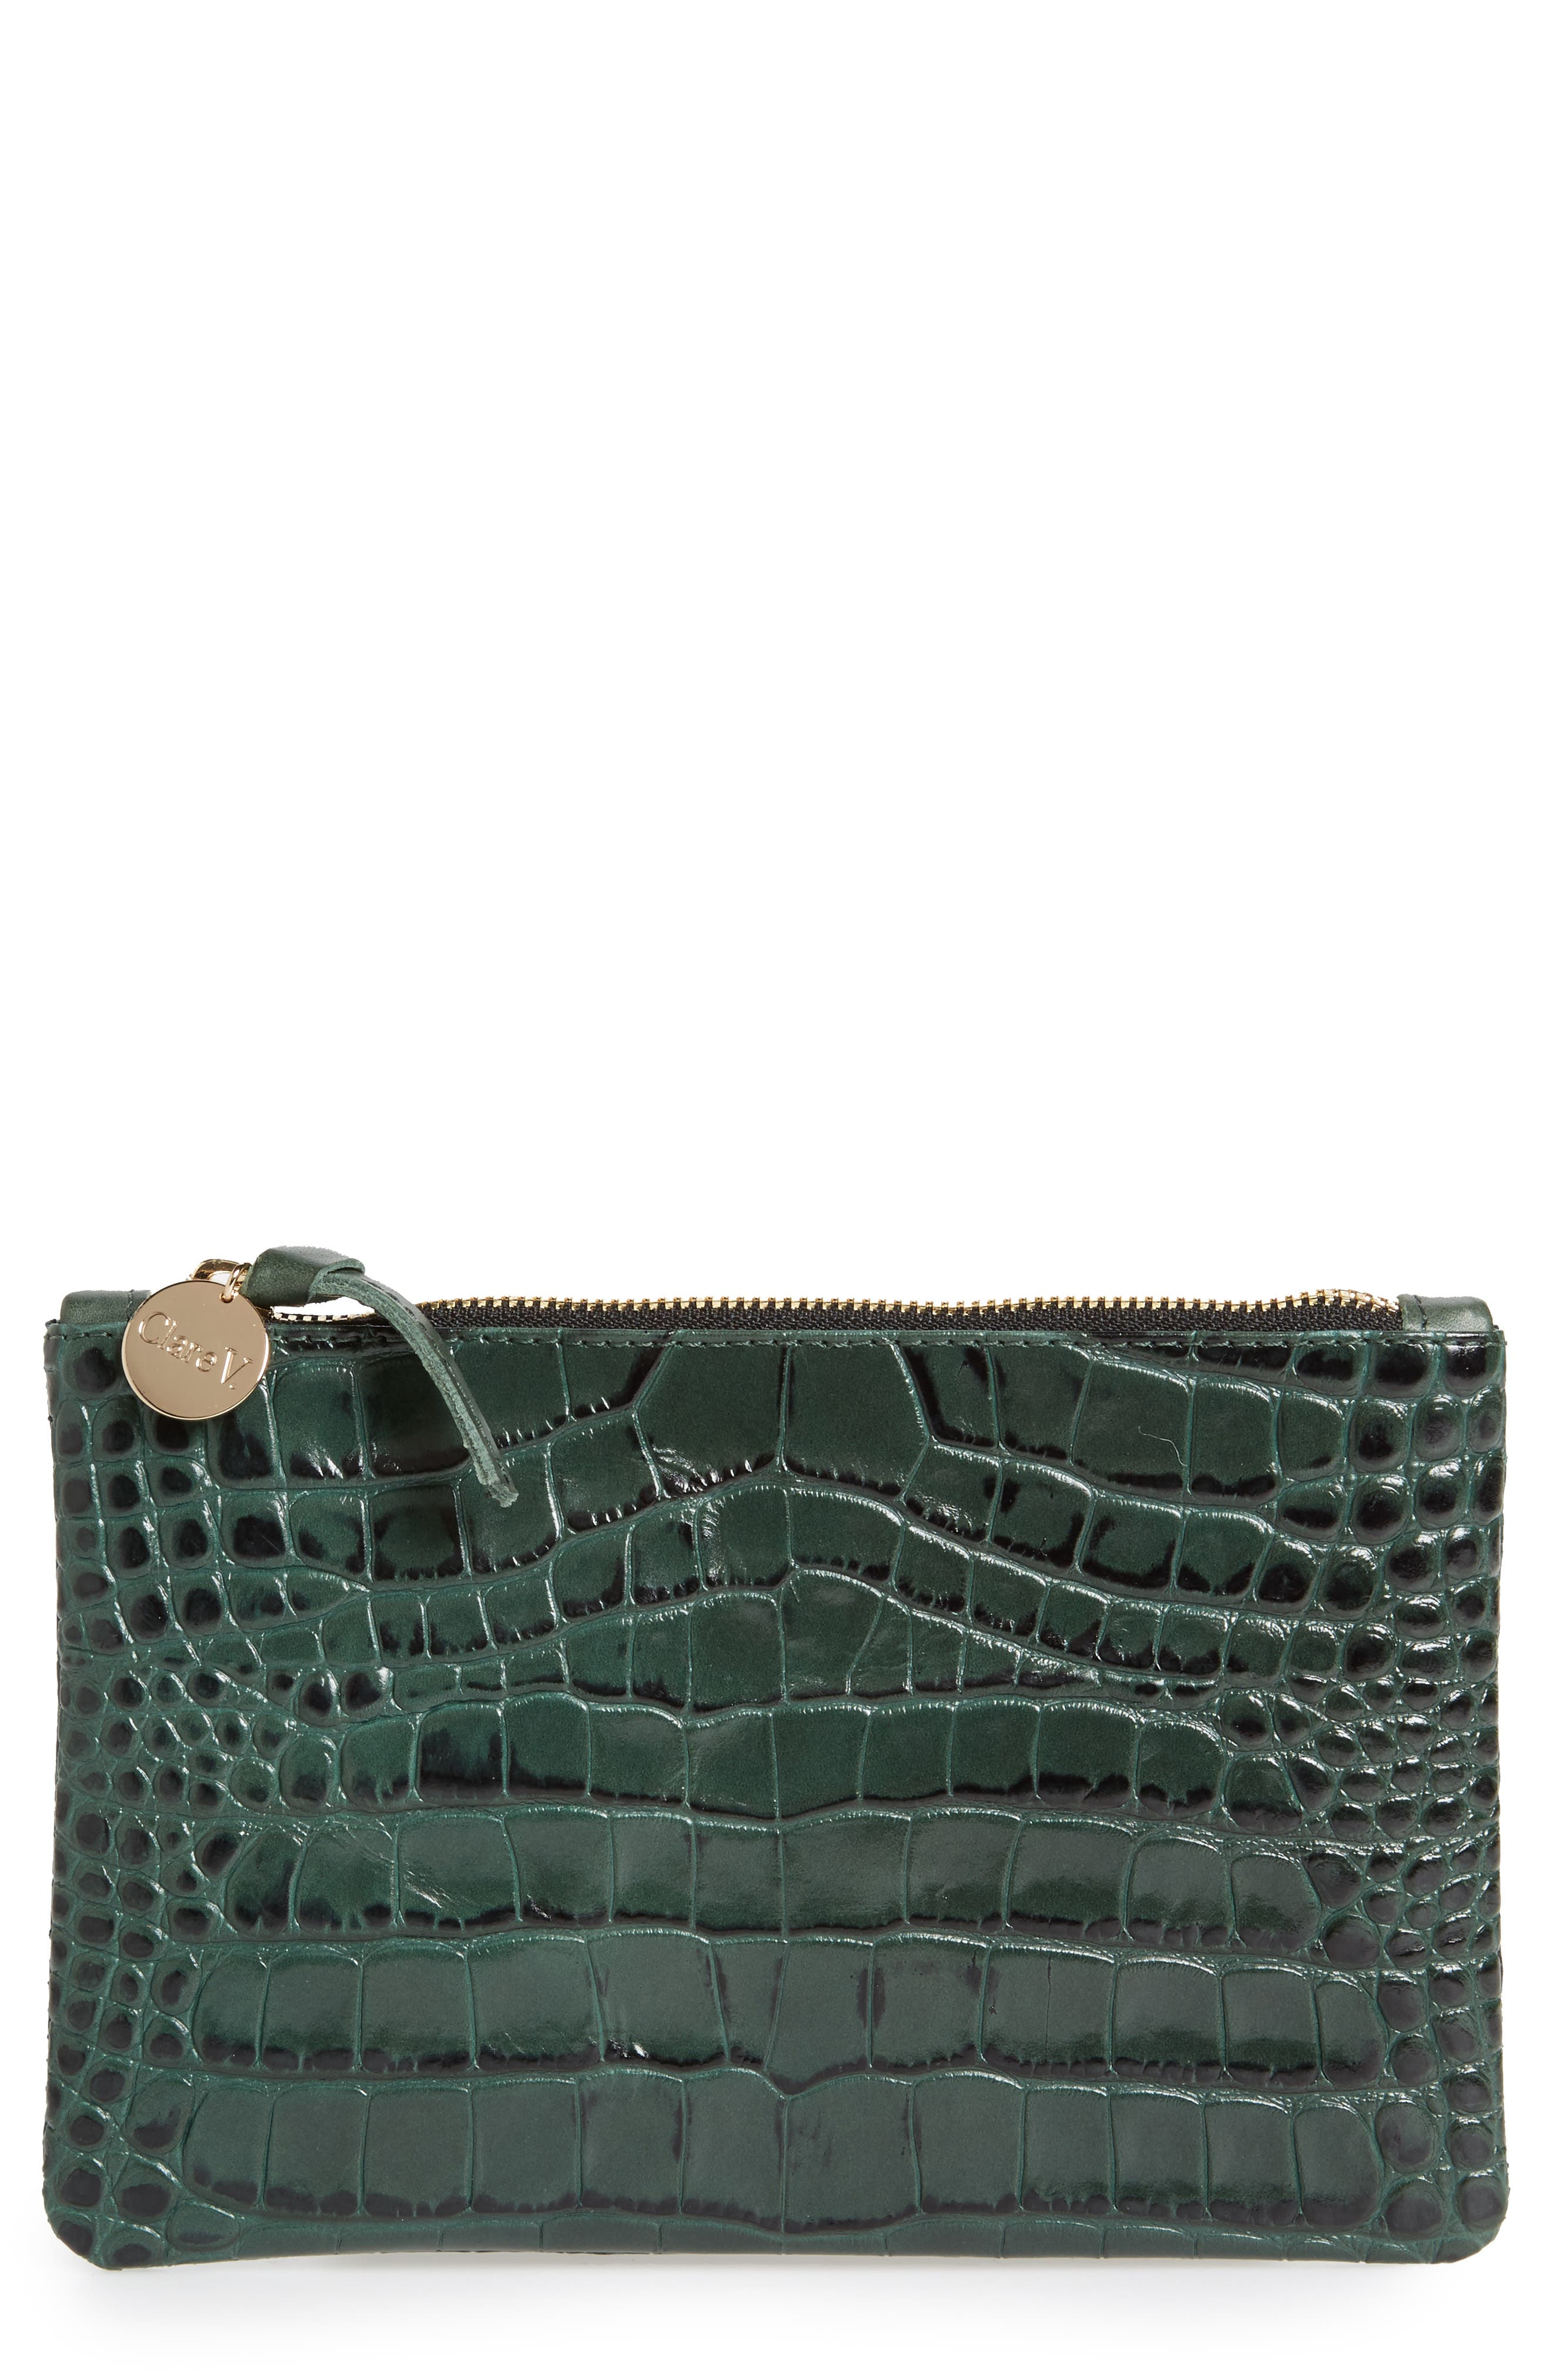 Alternate Image 1 Selected - Clare V. Croc Embossed Leather Clutch